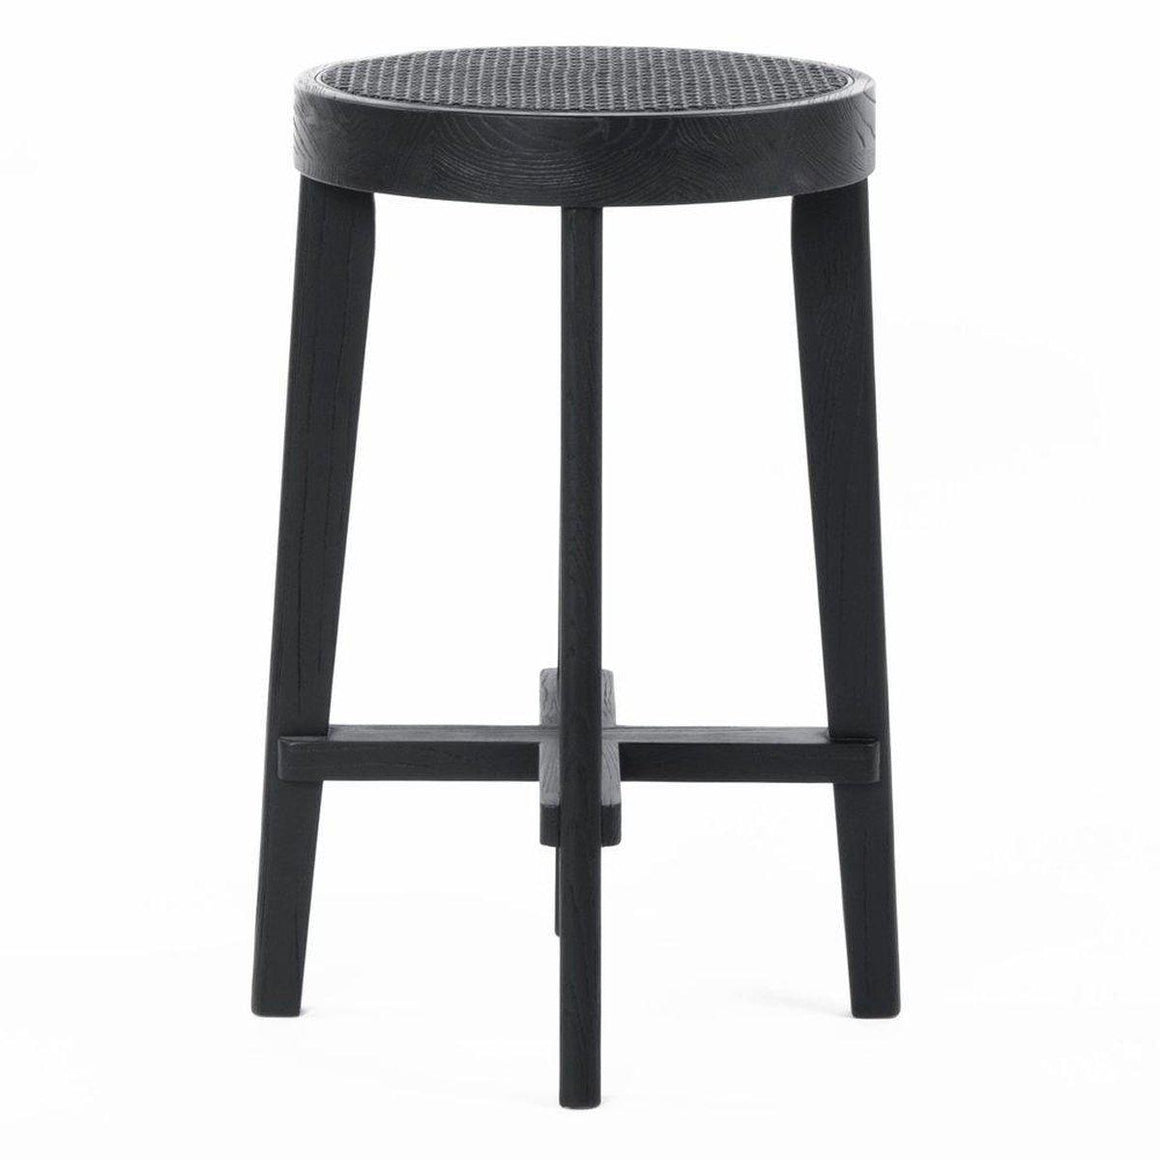 Cape Byron Rattan Bar Stool - Black Bar Stool Cafe Lighting